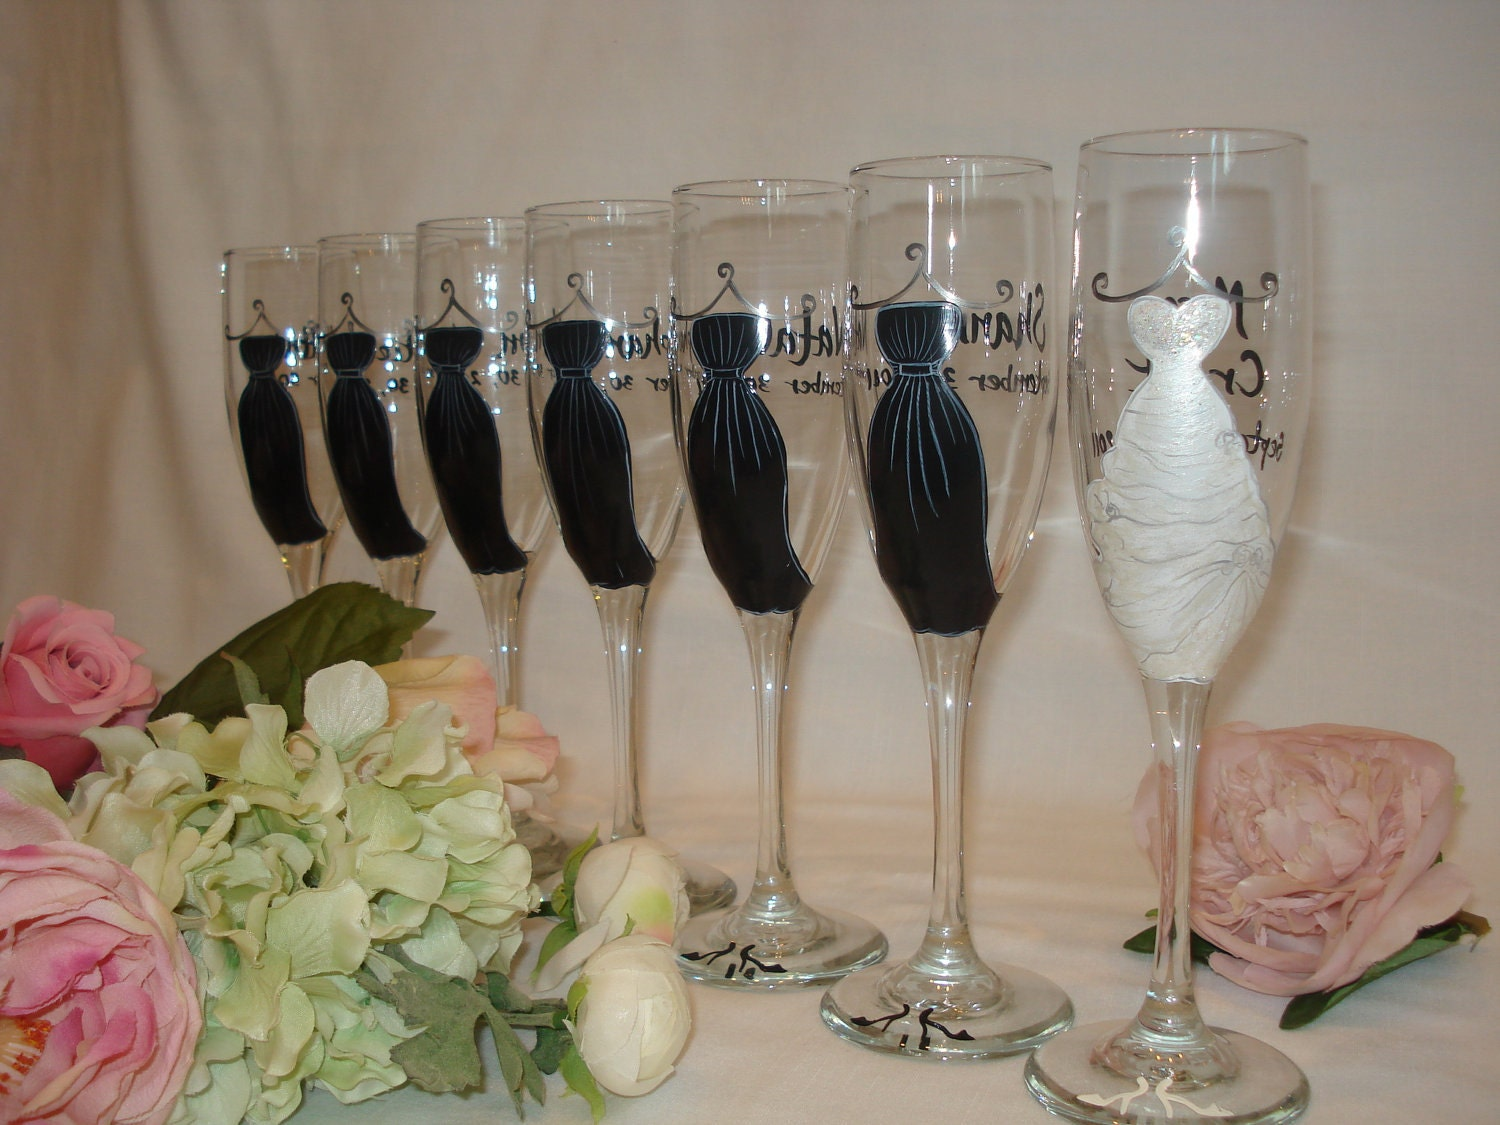 Wedding Keepsake Gifts For The Bride : Personalized Hand Painted Bridesmaid Dress Wine Glasses GIFT